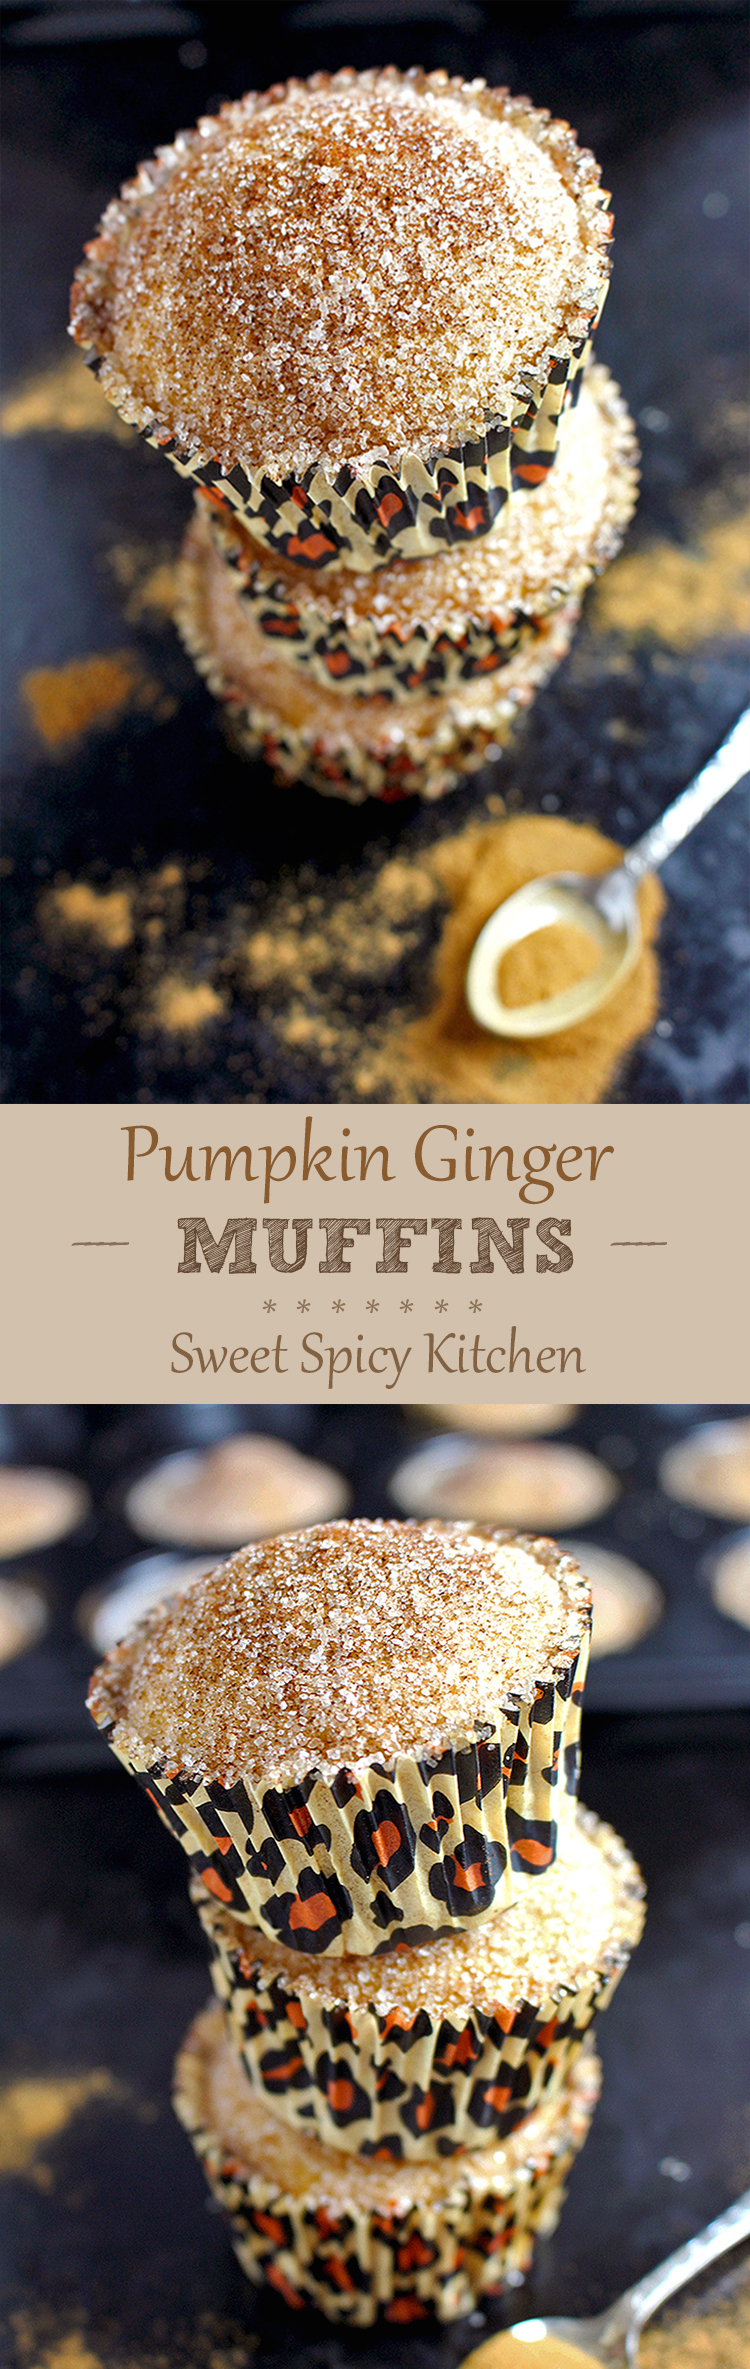 Untitled-2 Pumpkin Ginger Muffins